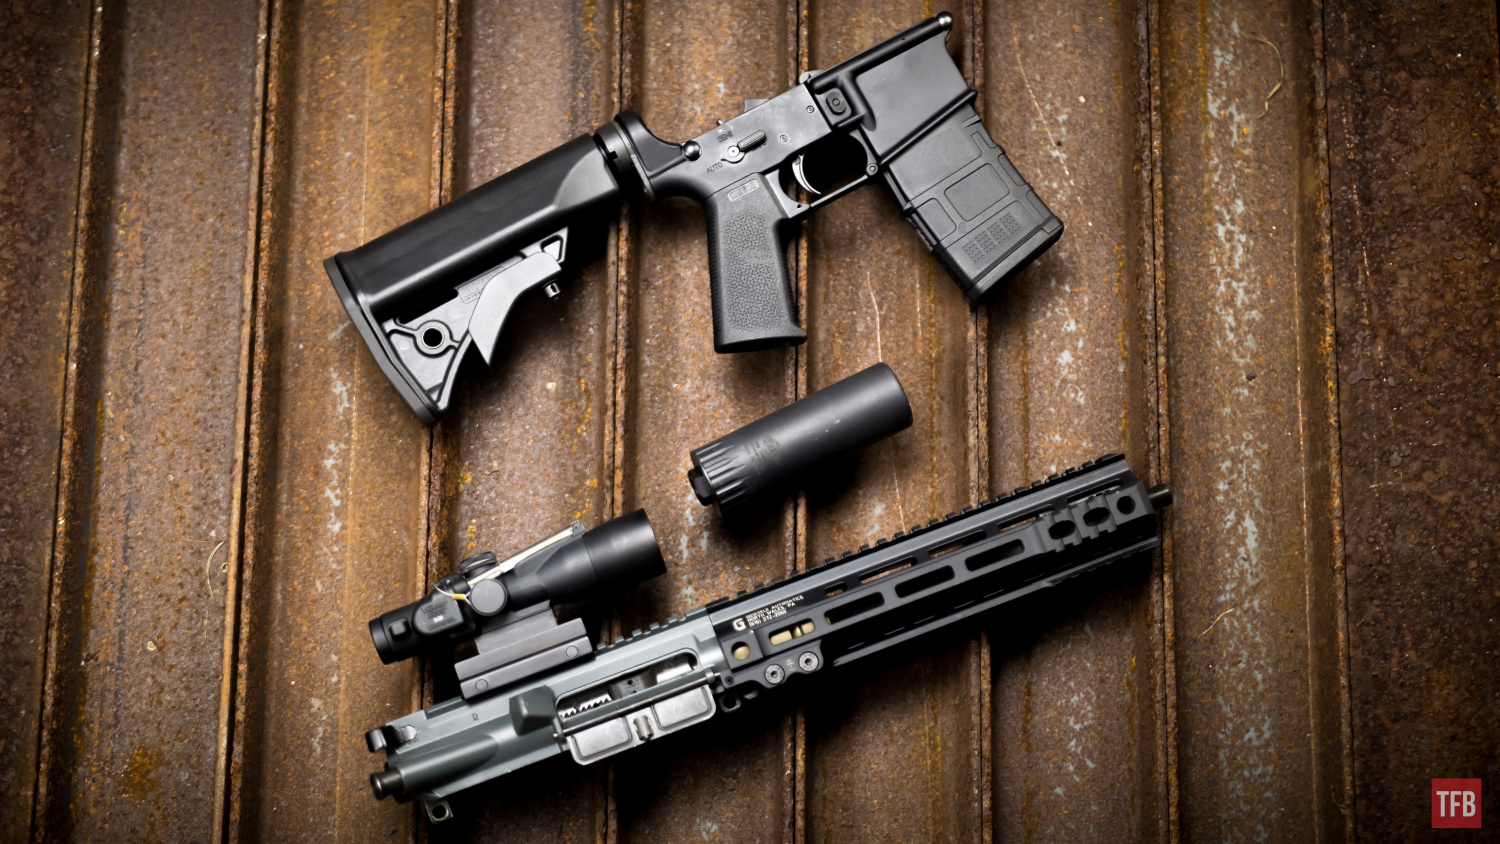 SILENCER SATURDAY #171: Full Auto Rated Suppressors - Fun And Science!